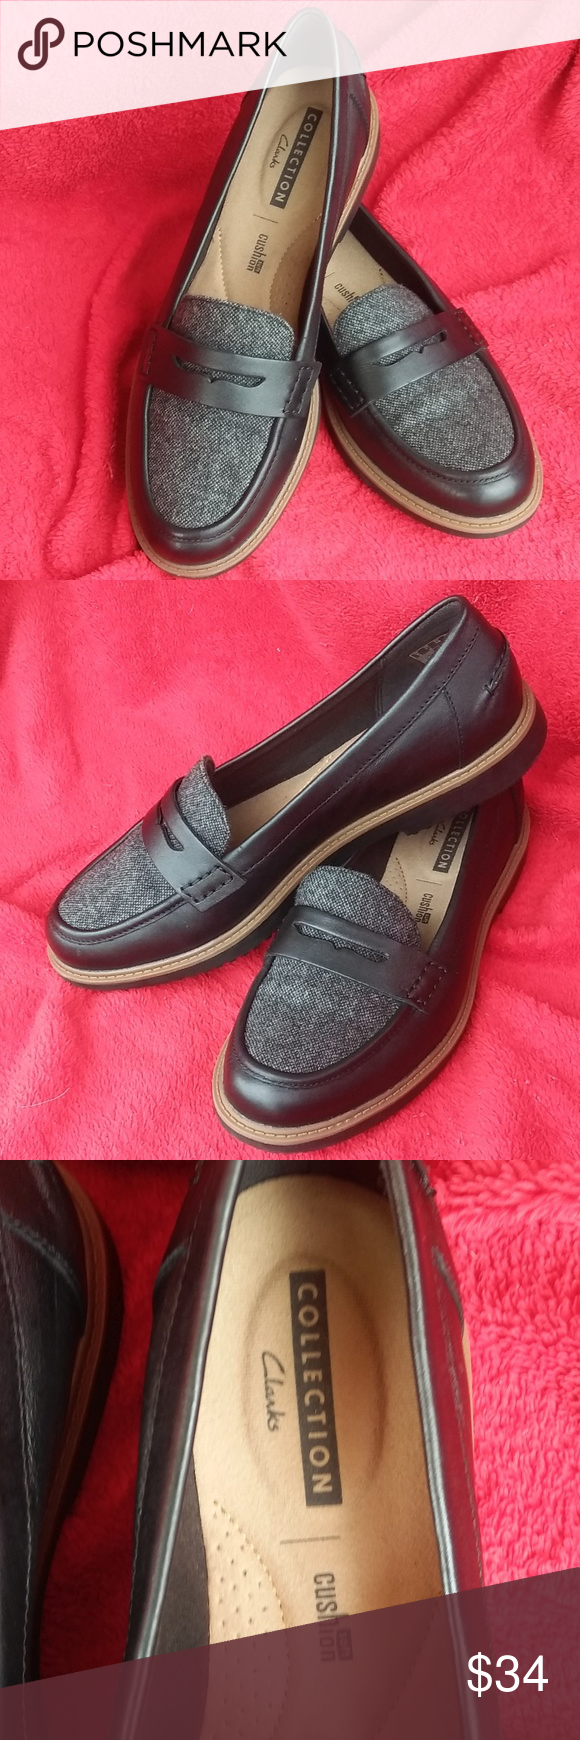 98c4cffeaad CLARKS COLLECTION Women Moccasin Loafers